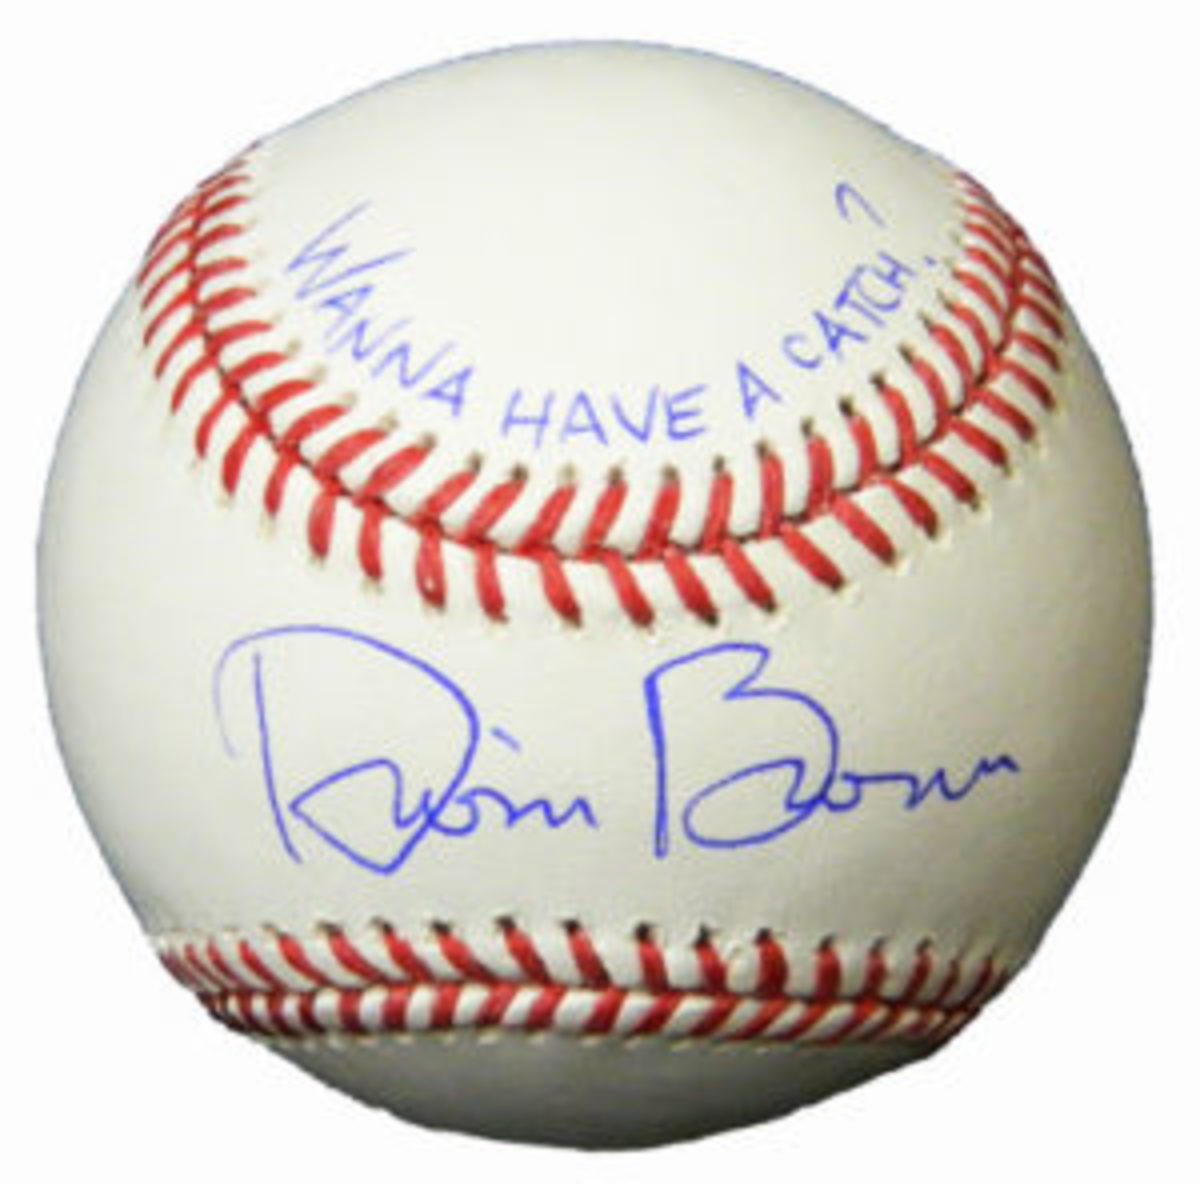 A baseball autographed by Dwier Brown, who played John Kinsella, in the movie Field of Dreams.